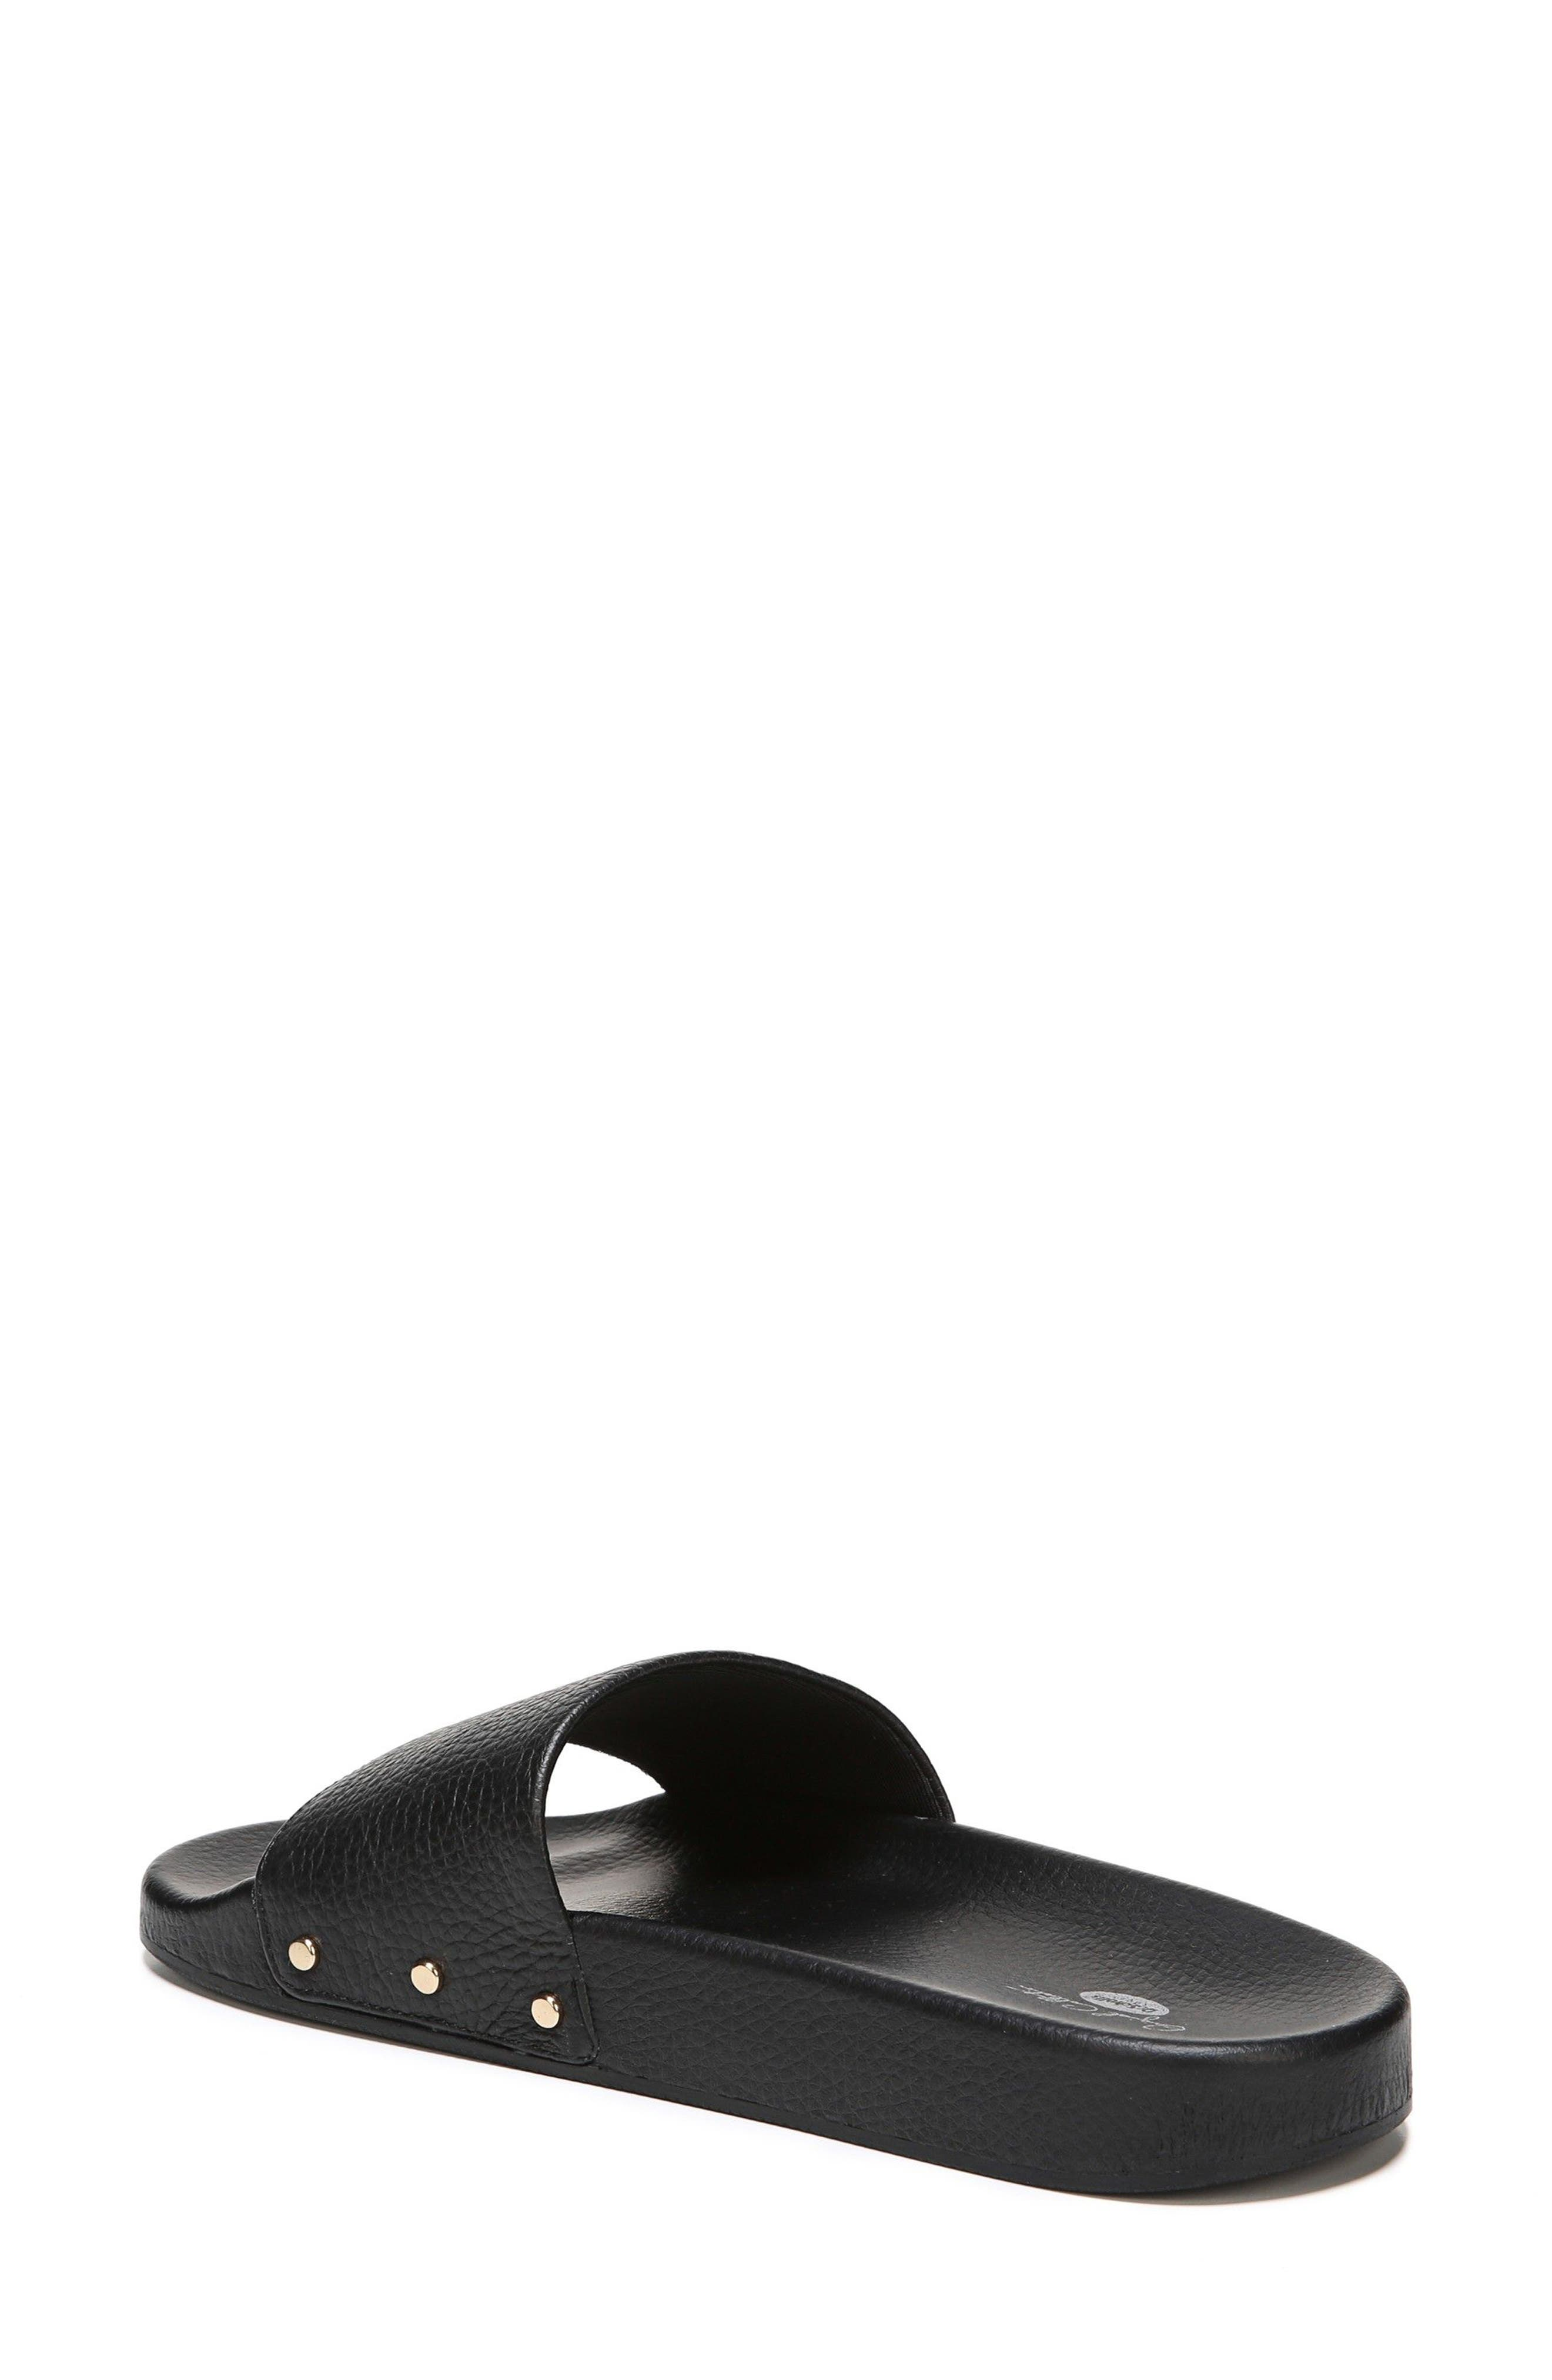 DR. SCHOLL'S, Pisces Slide Sandal, Alternate thumbnail 2, color, BLACK LEATHER